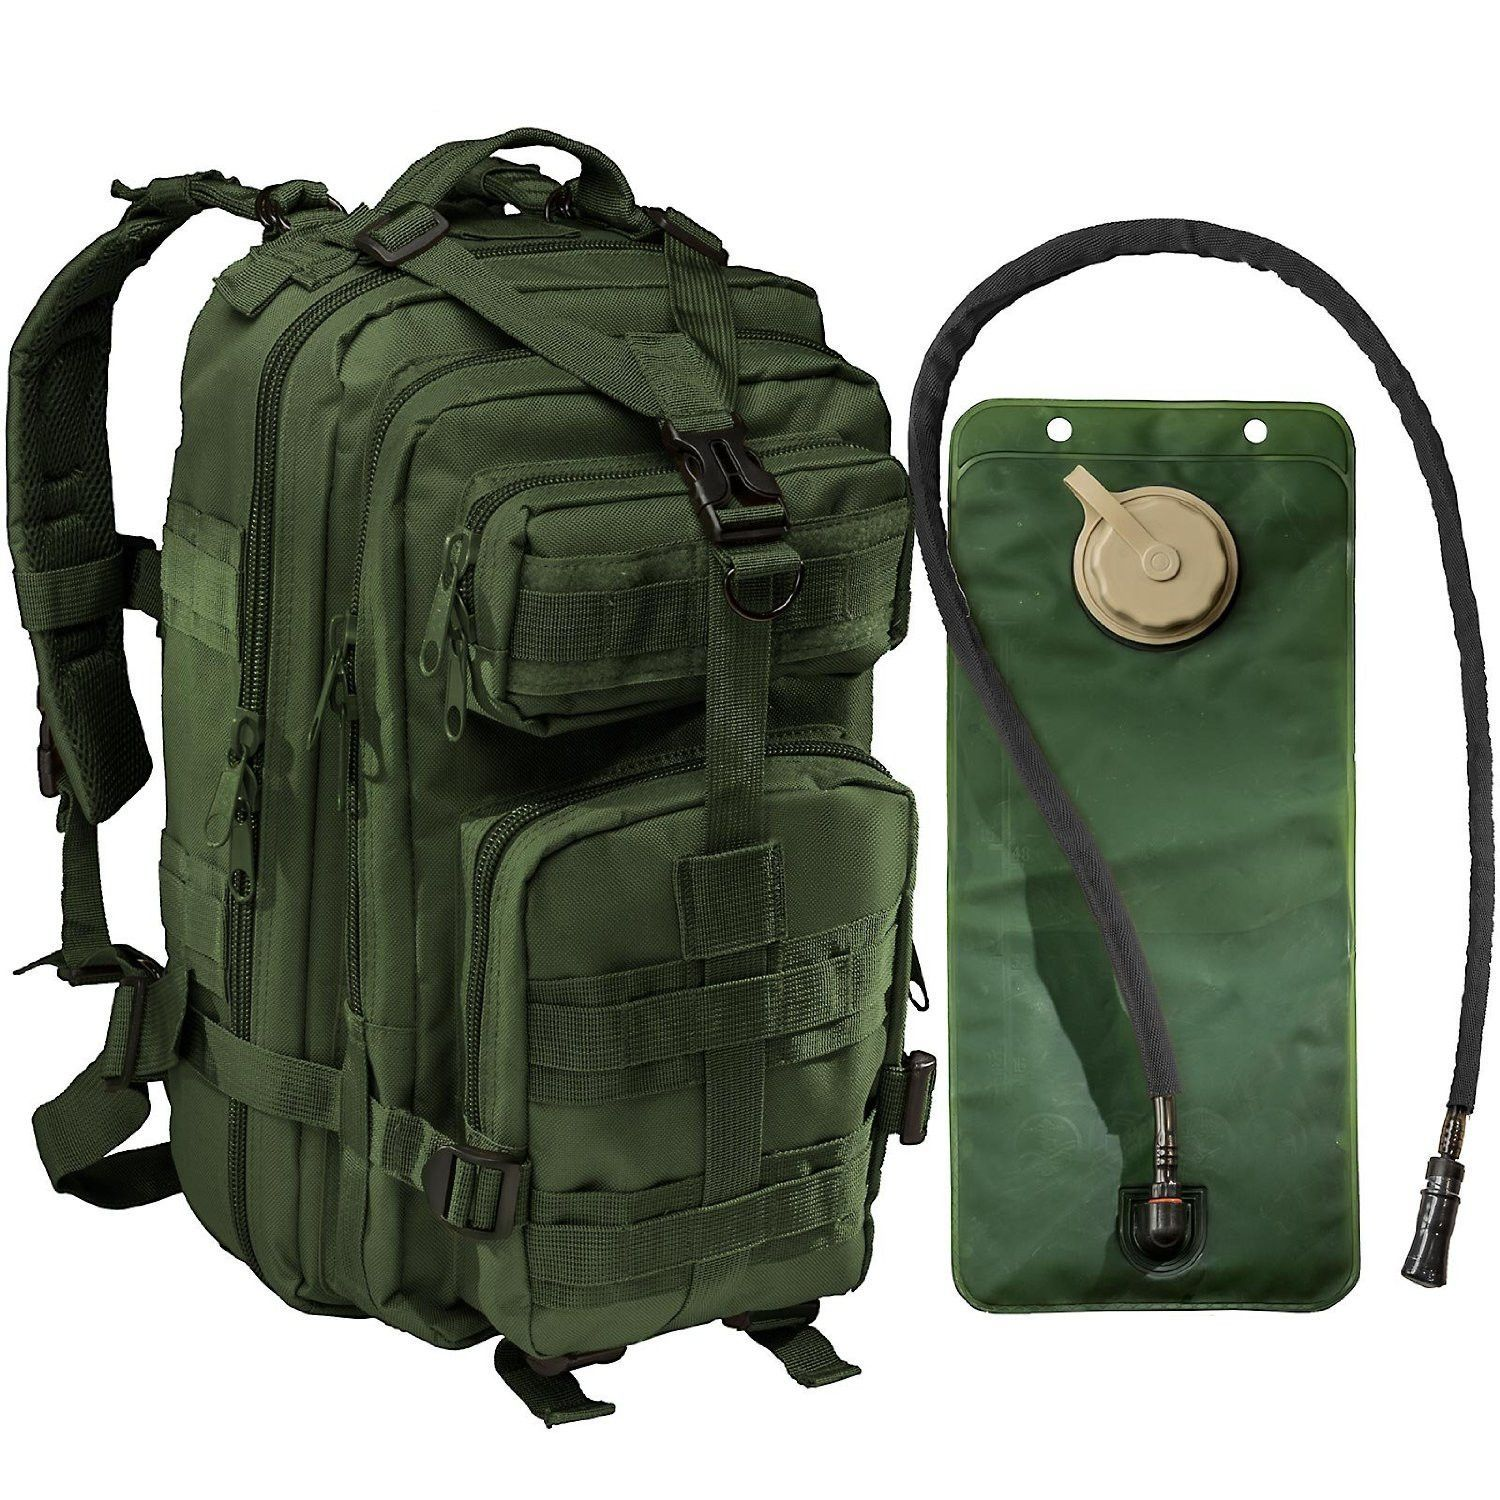 Small Tactical Assault Military Backpack 2.5 Liter